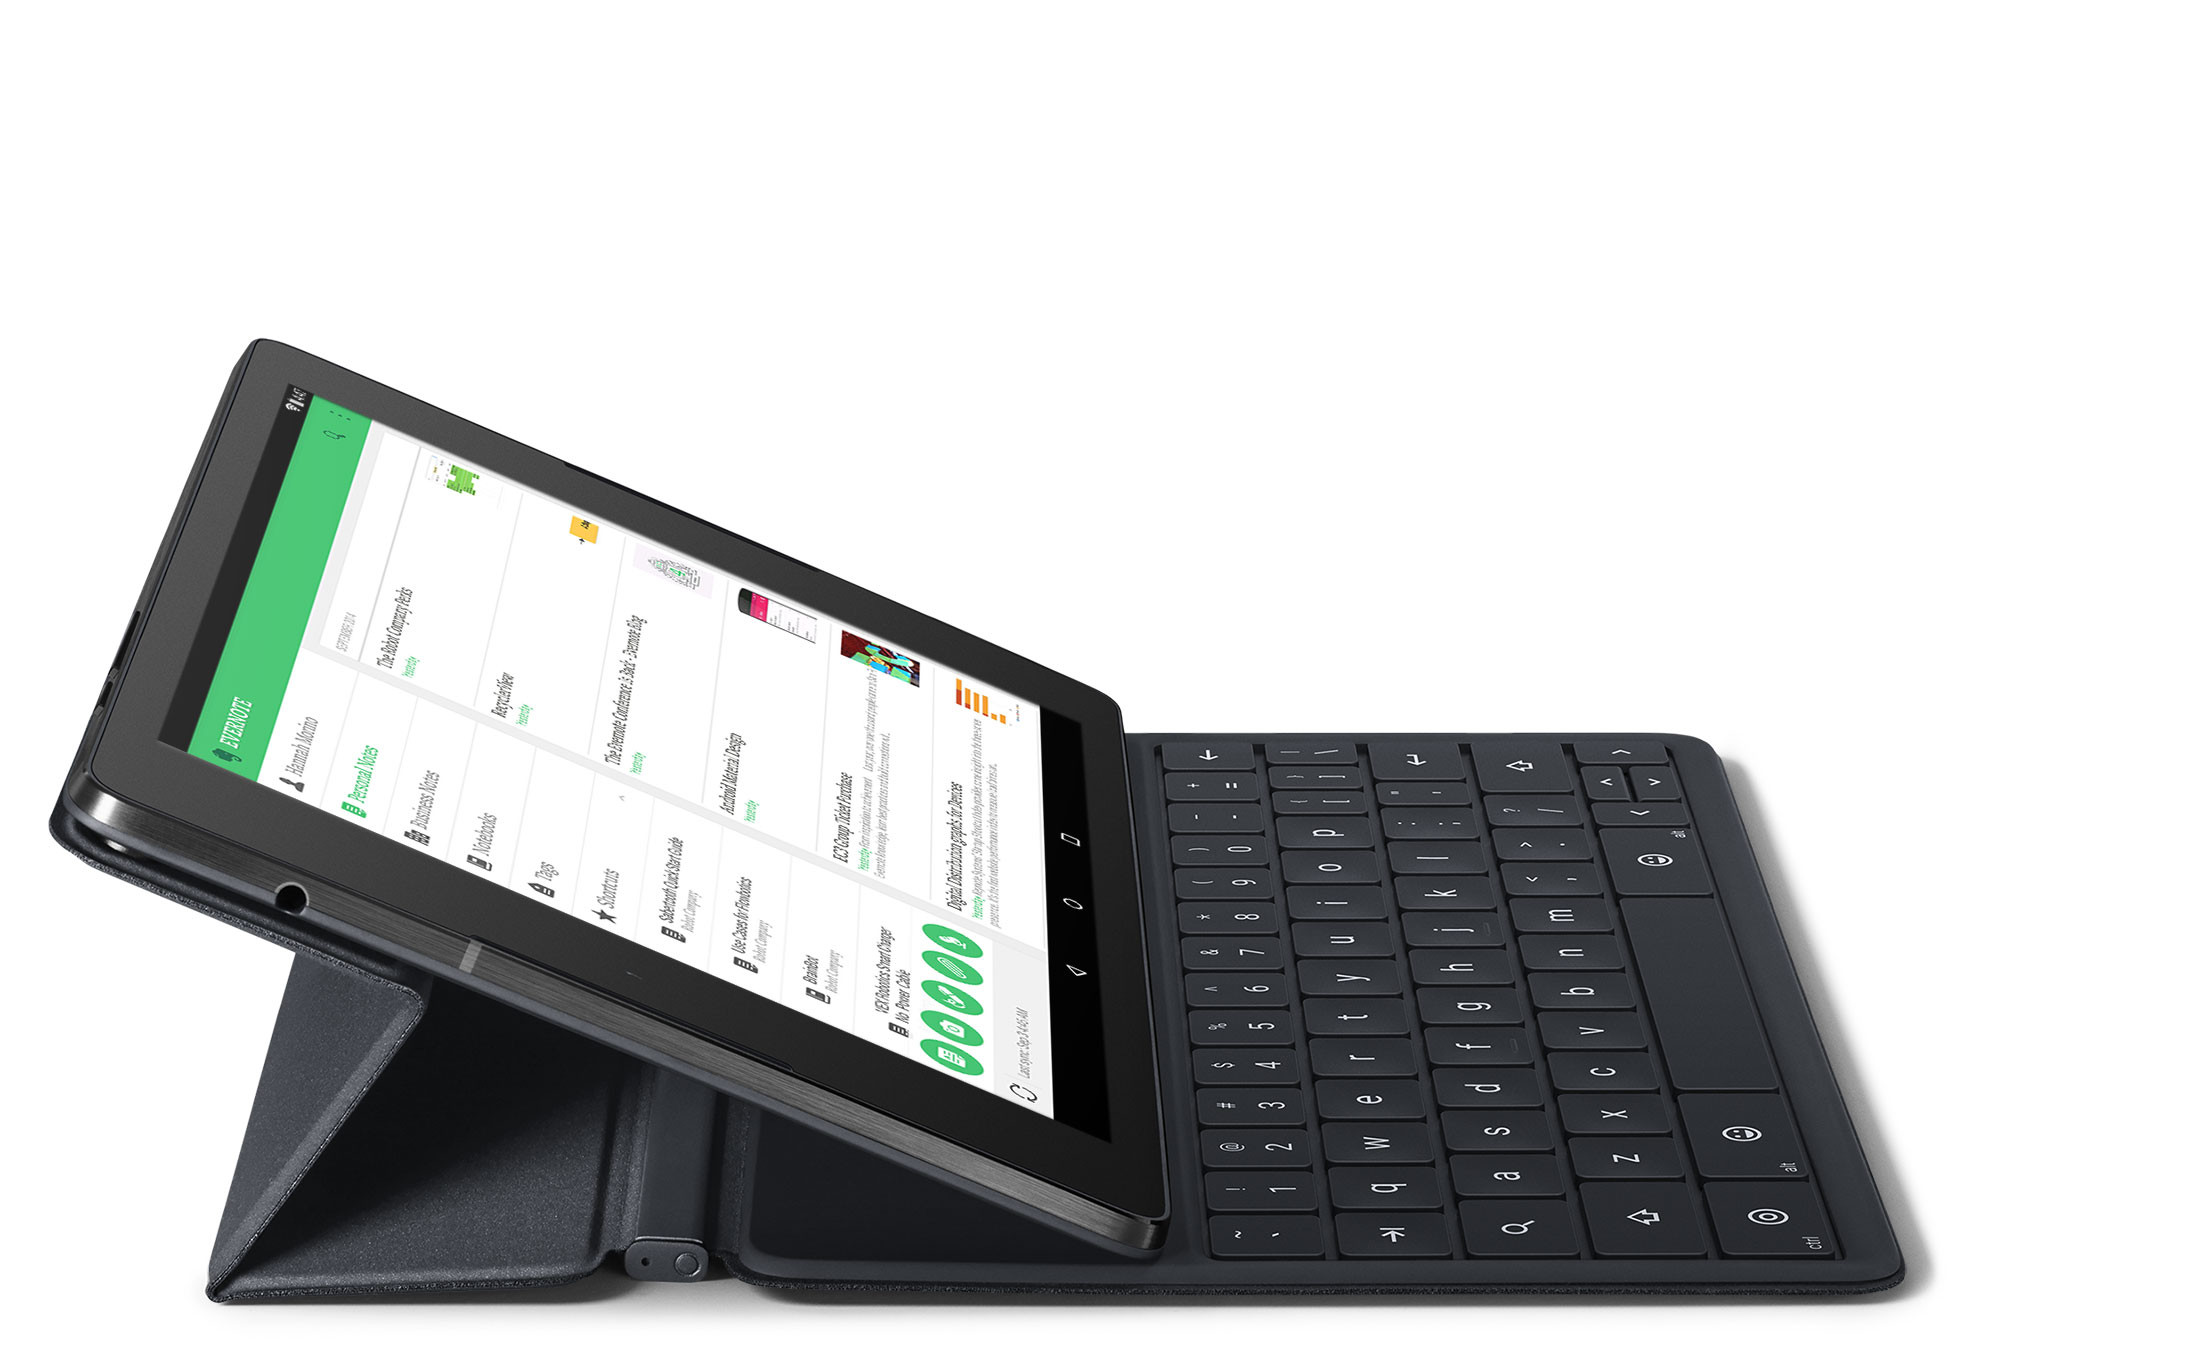 "N9-keyboardlow-1600 ""width ="" 2200 ""height ="" 1368 ""srcset ="" https://www.funzen.net/wp-content/uploads/2019/09/HTC-Nexus-9-all-the-information.jpg 2200w, https: //elandroidelibre.elespanol.com/wp-content/uploads/2014/10/N9-keyboardlow-1600-400x248.jpg 400w, https://elandroidelibre.elespanol.com/wp-content/uploads/2014/10/N9 -keyboardlow-1600-680x422.jpg 680w ""sizes ="" (max-width: 2200px) 100vw, 2200px ""/></p> <p>Google has also wanted to take care of the camera section with the inclusion of a 1.6MP front quite capable for videoconferencing and a rear with OIS stabilization, which offers such good results.</p><div class='code-block code-block-7' style='margin: 8px auto; text-align: center; display: block; clear: both;'> <div data-ad="